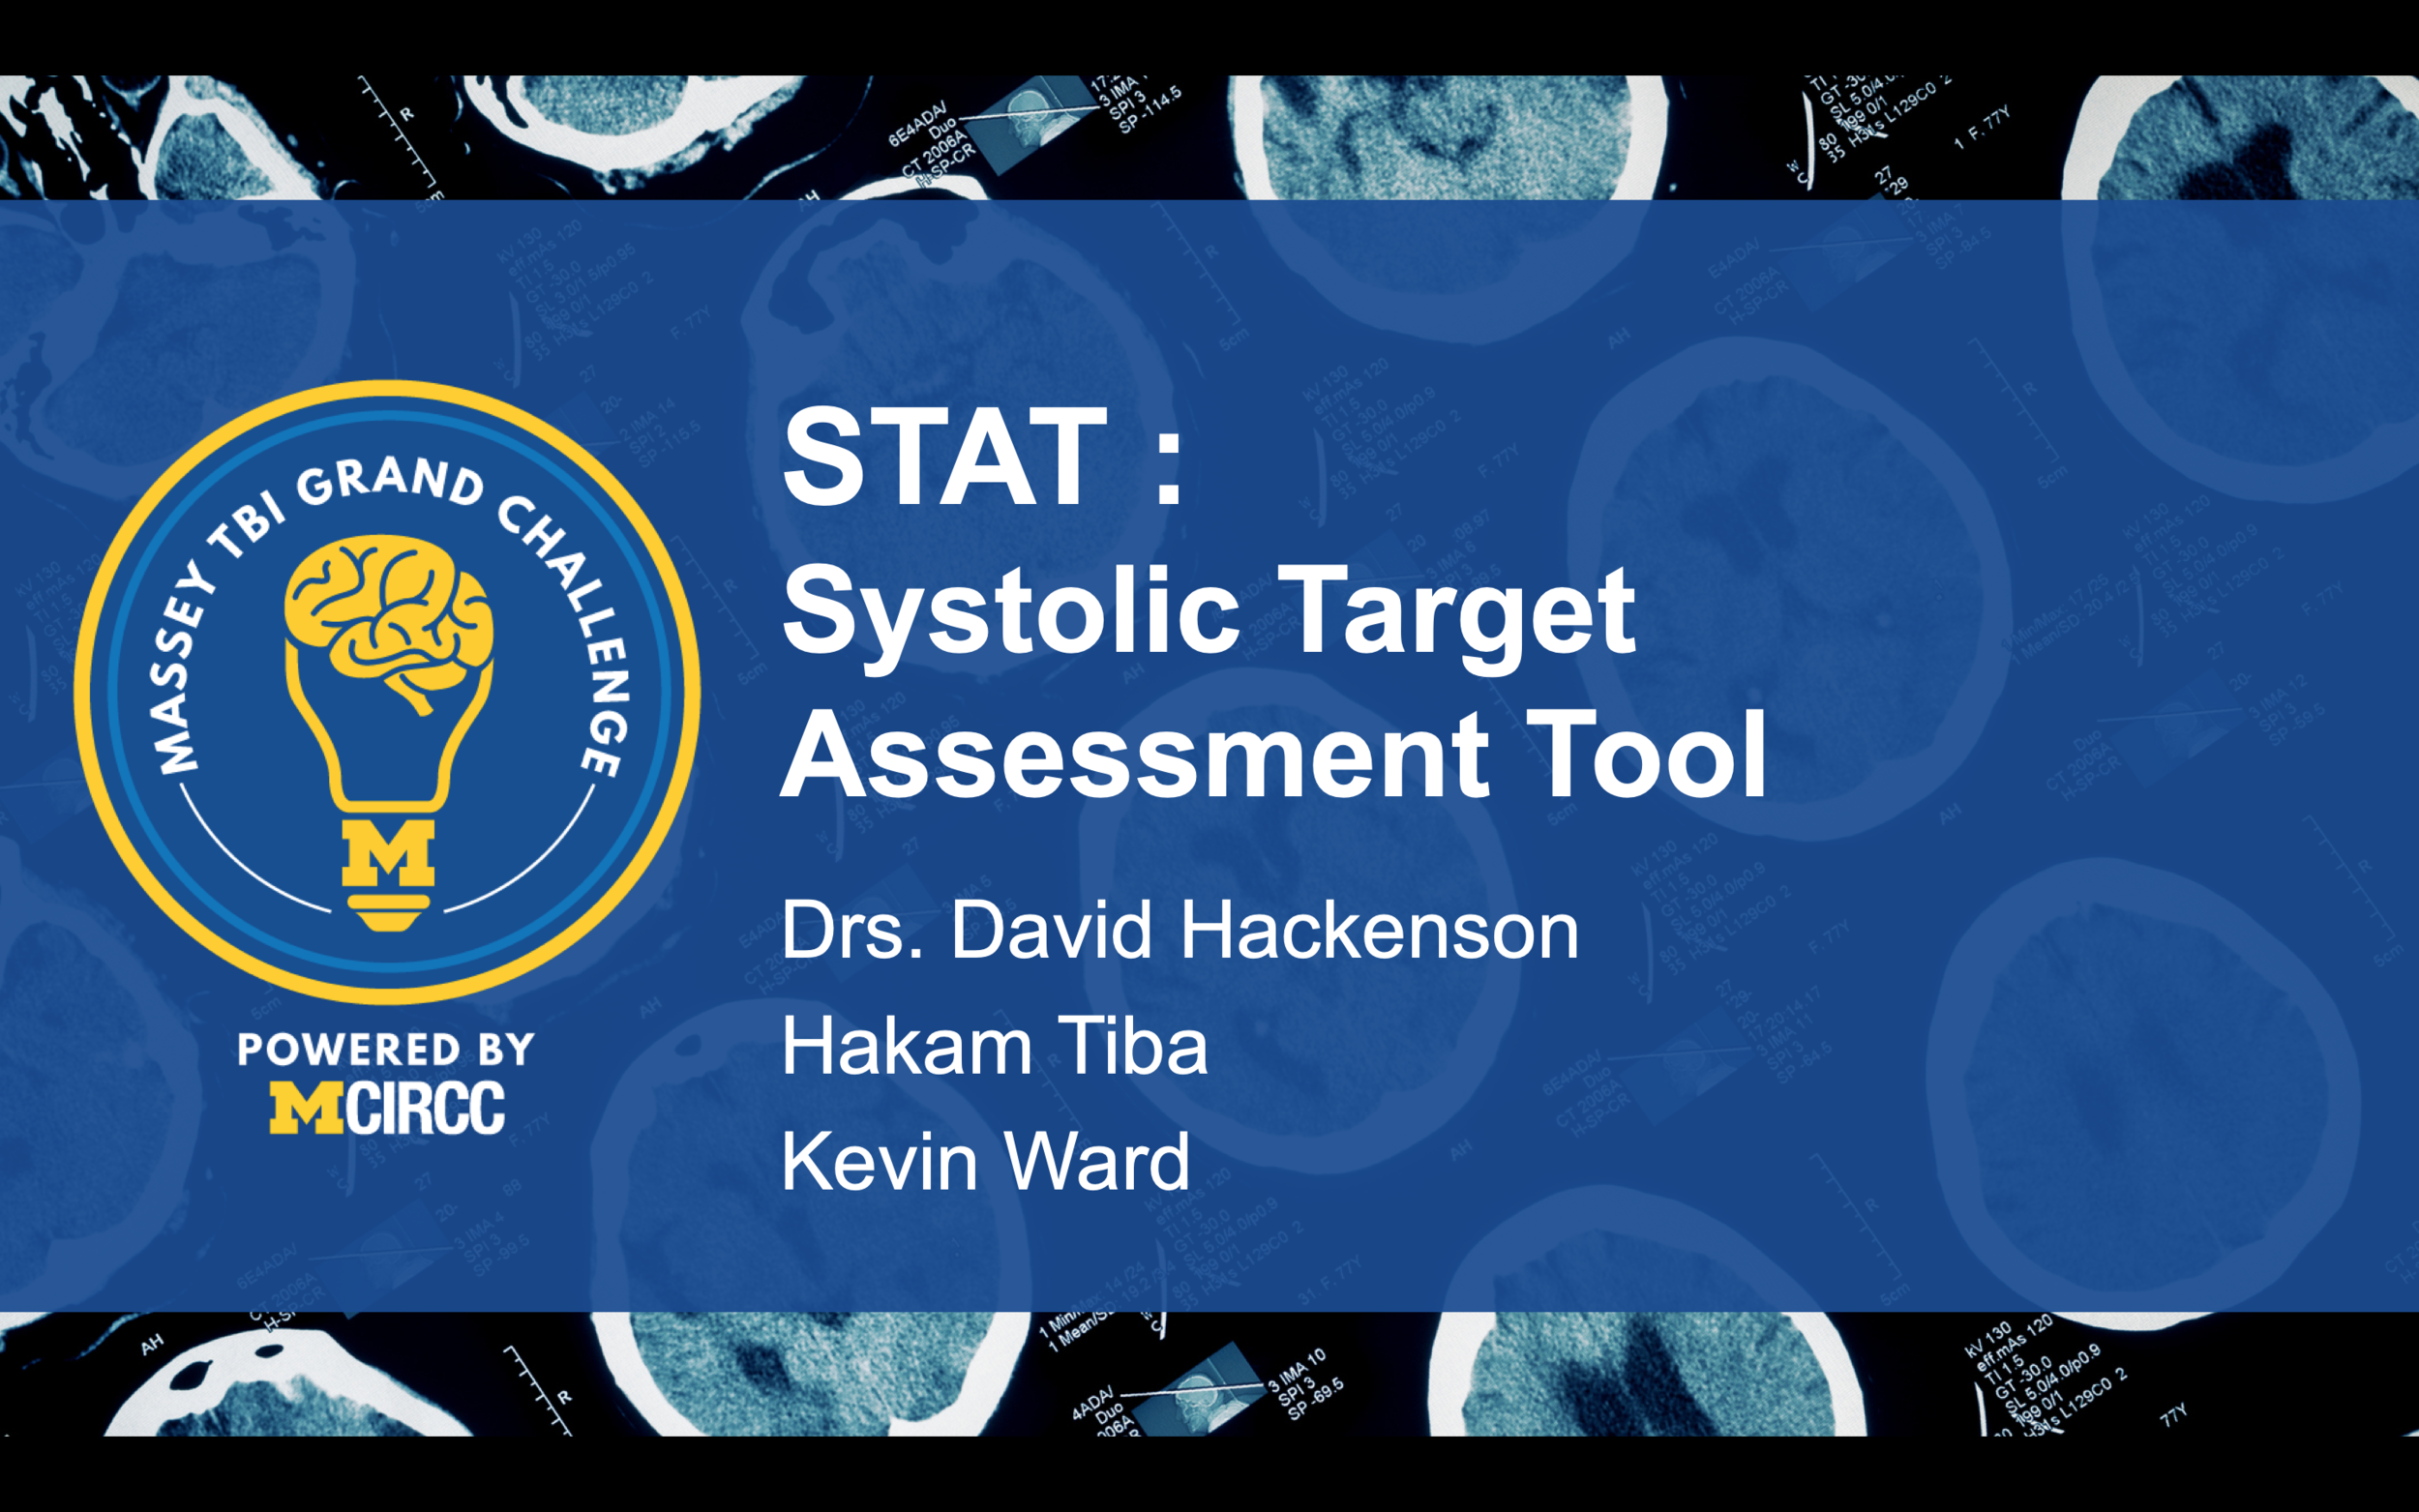 In this project, the group will refine and test the next iteration of their device that provides automated, targeted SBP monitoring: the systolic target assessment tool (STAT). The device will be capable of identifying current SBP, and most importantly, will provide a near continuous indication of a patient's pressure relative to a threshold SBP needed for optimal TBI management.